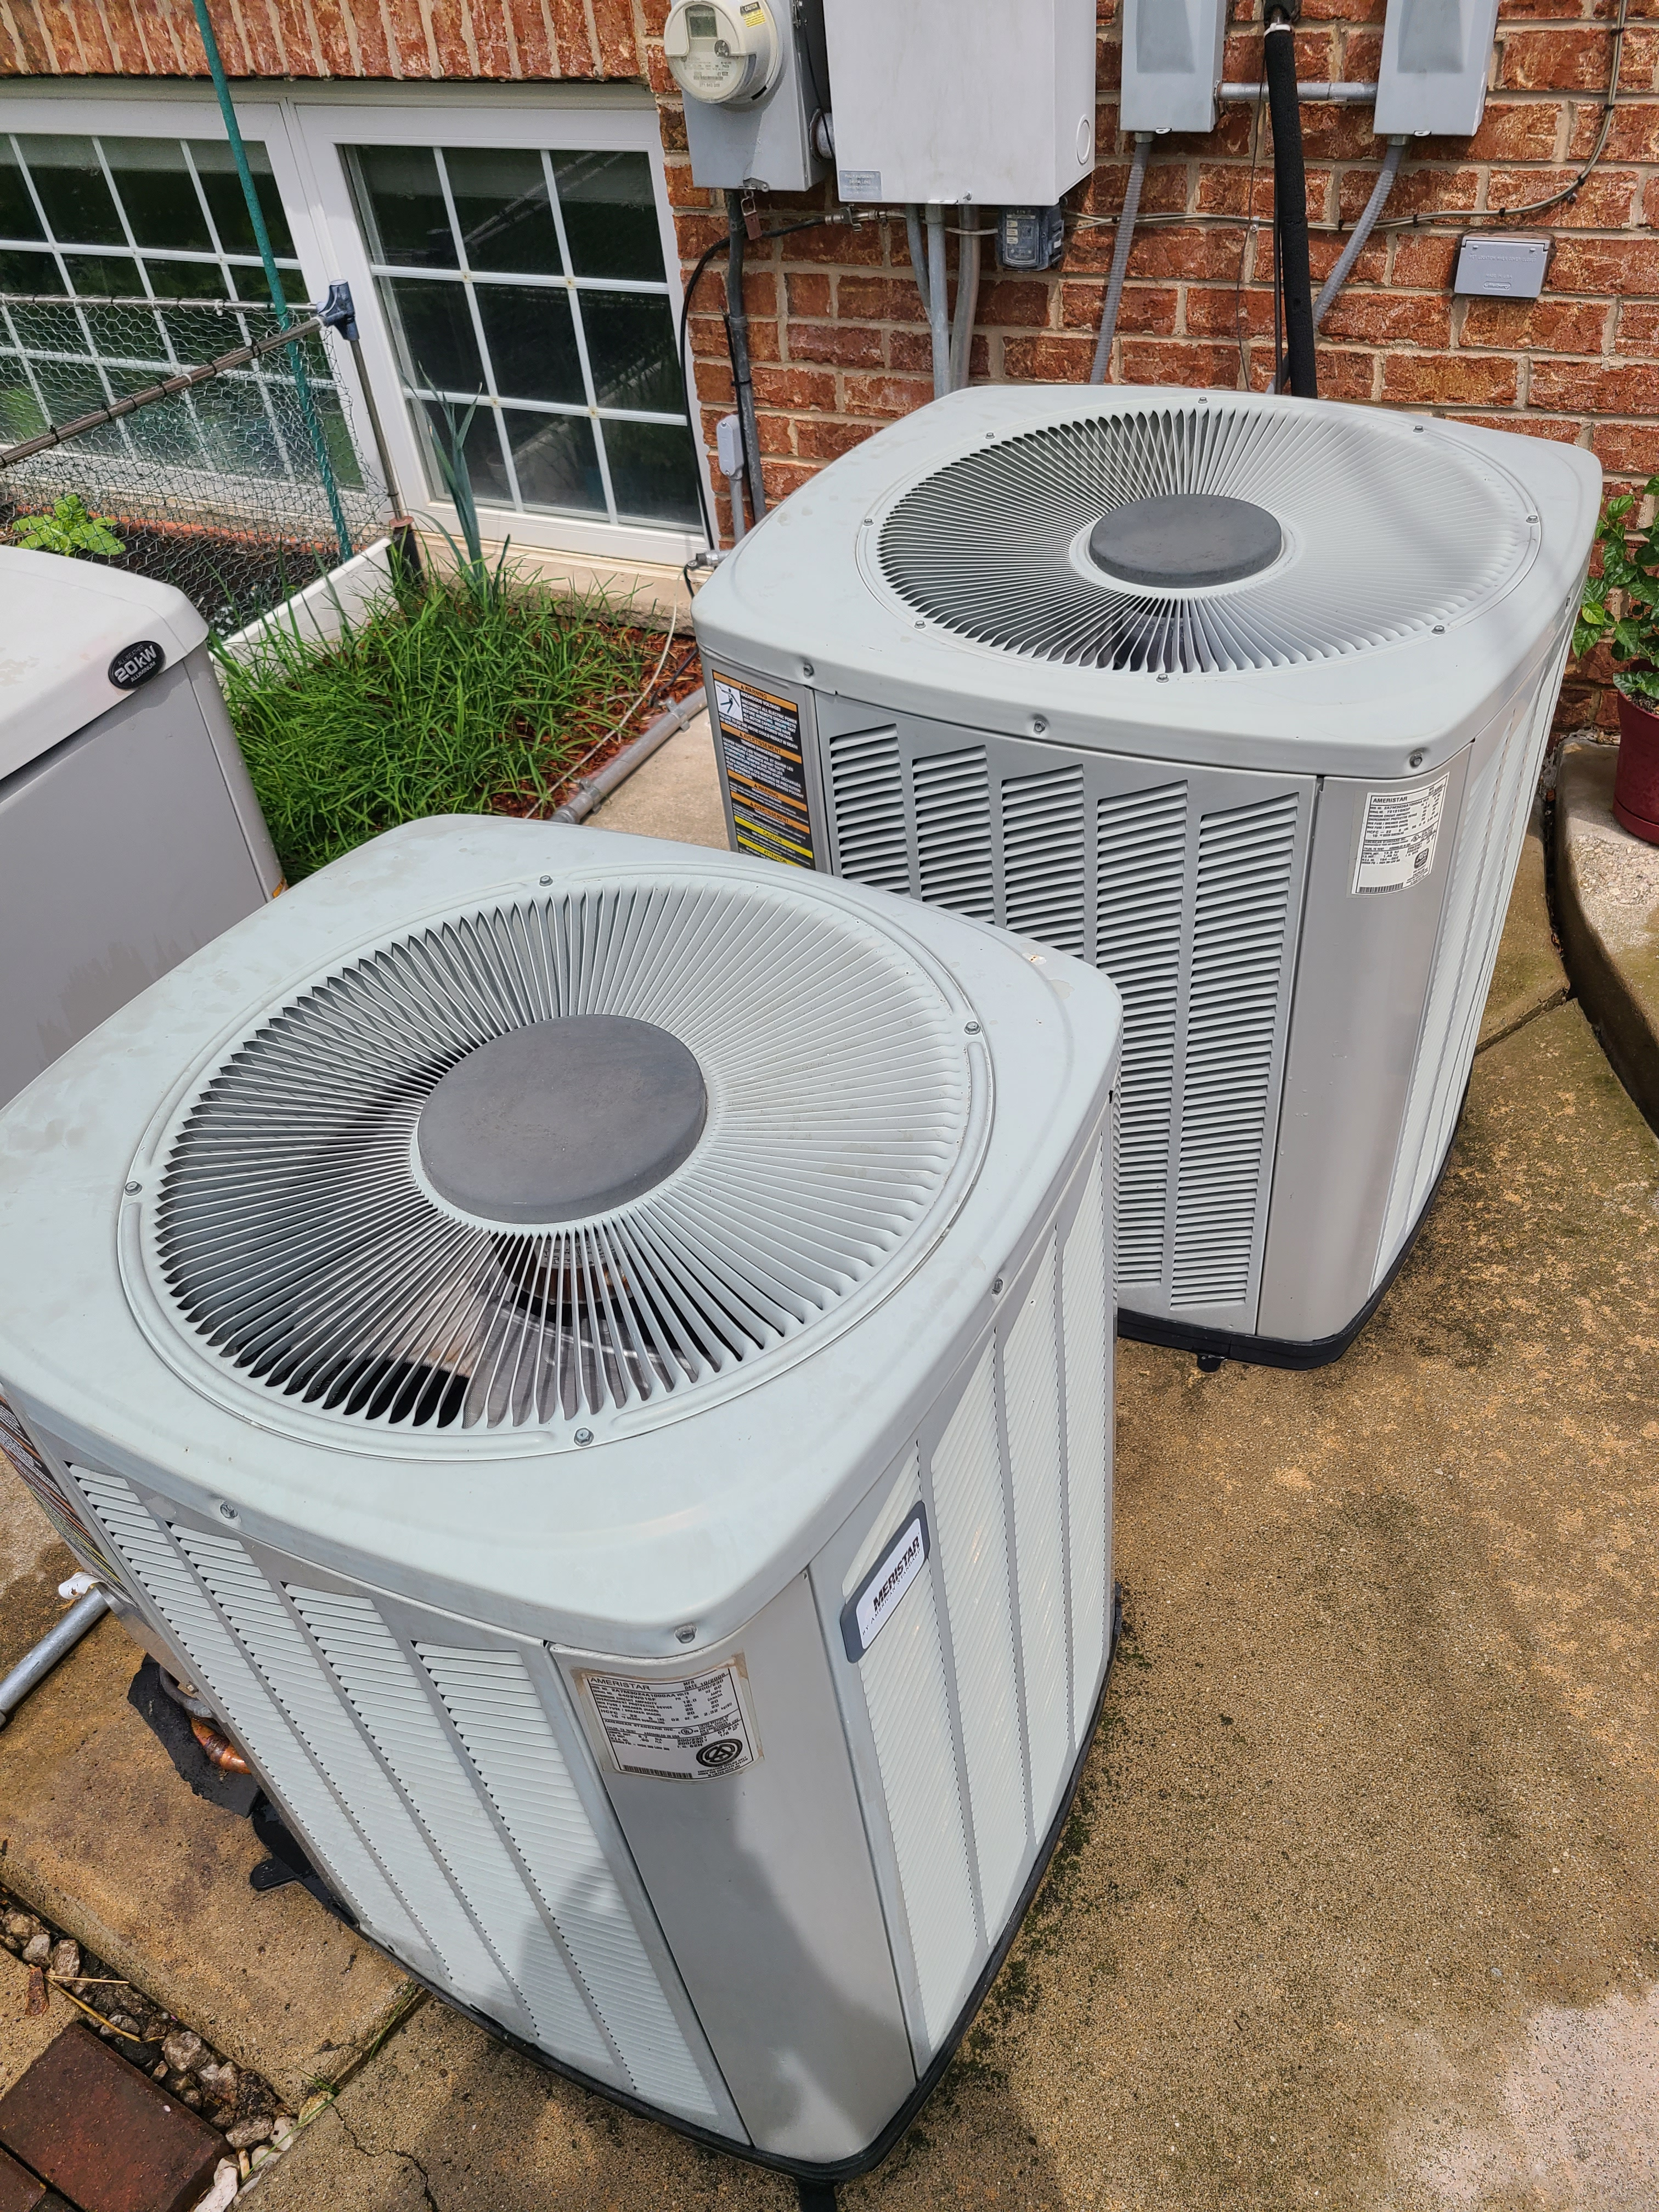 Performed routine maintenance on two American Standard R22 units. Checked voltage, amperage, temperatures, pressures and microfarads. Washed both condenser coils thoroughly.